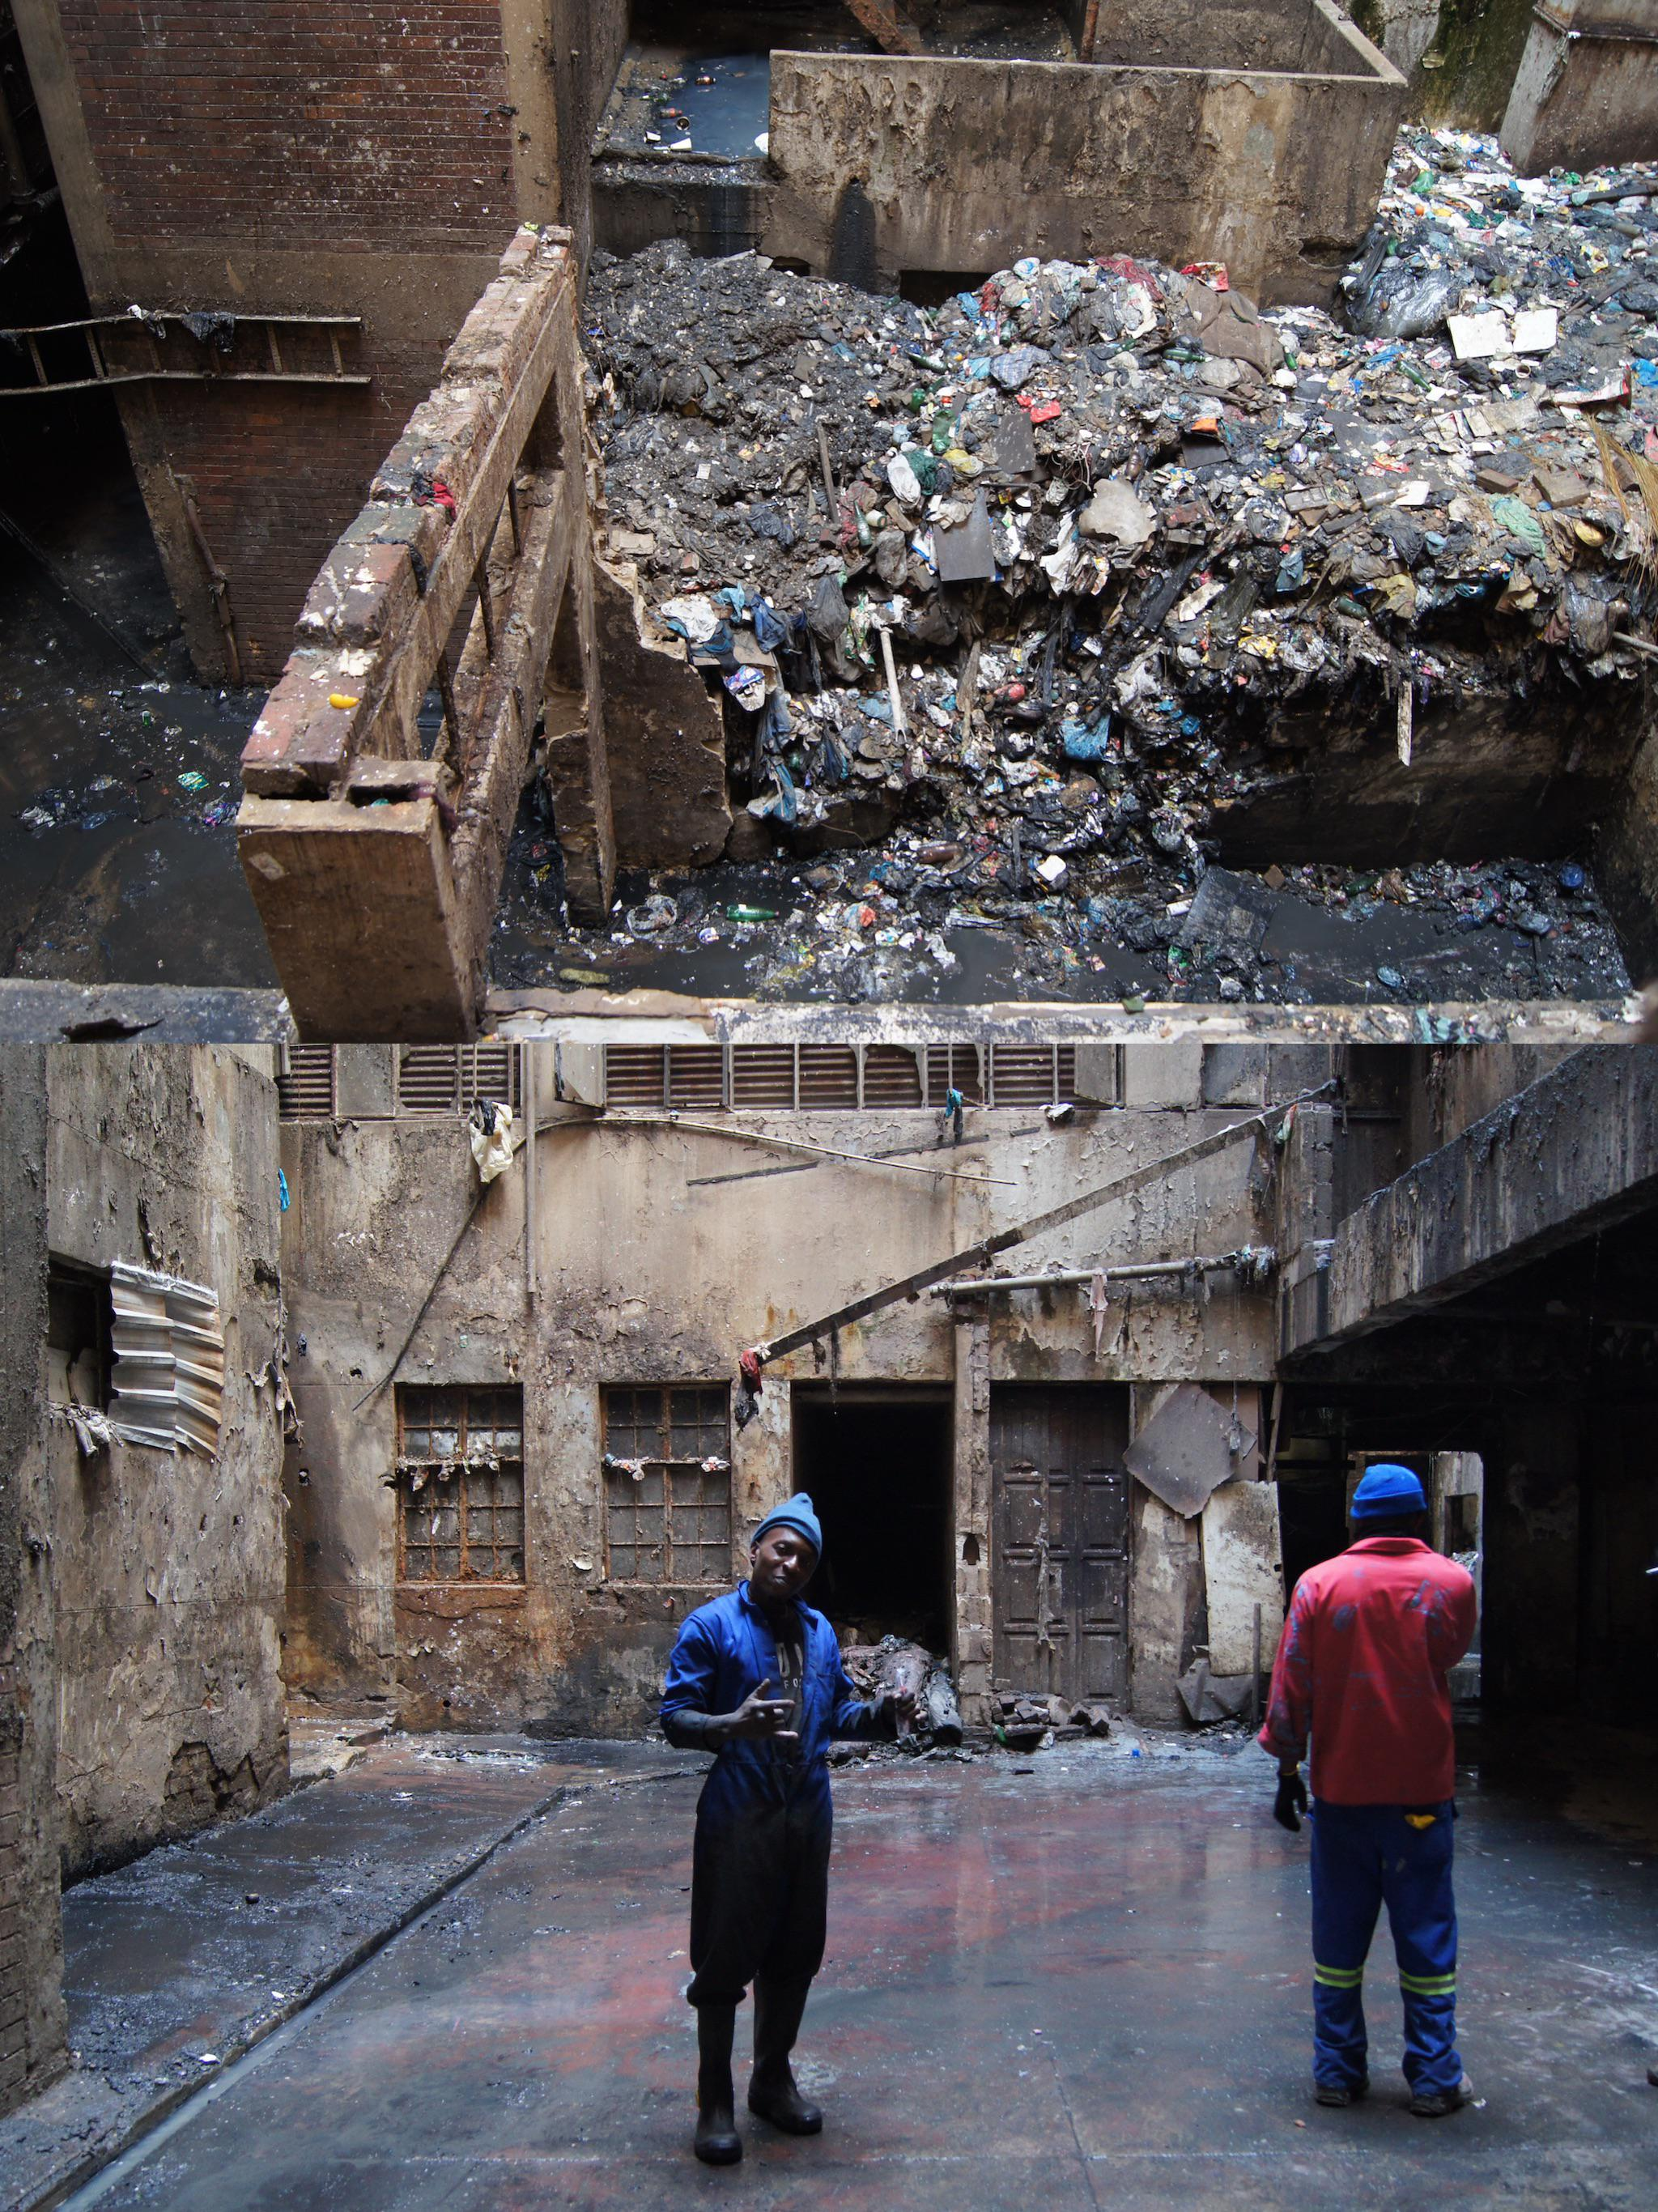 Volunteers cleared 600 tonnes of waste, rubble and trash from an Orphanage